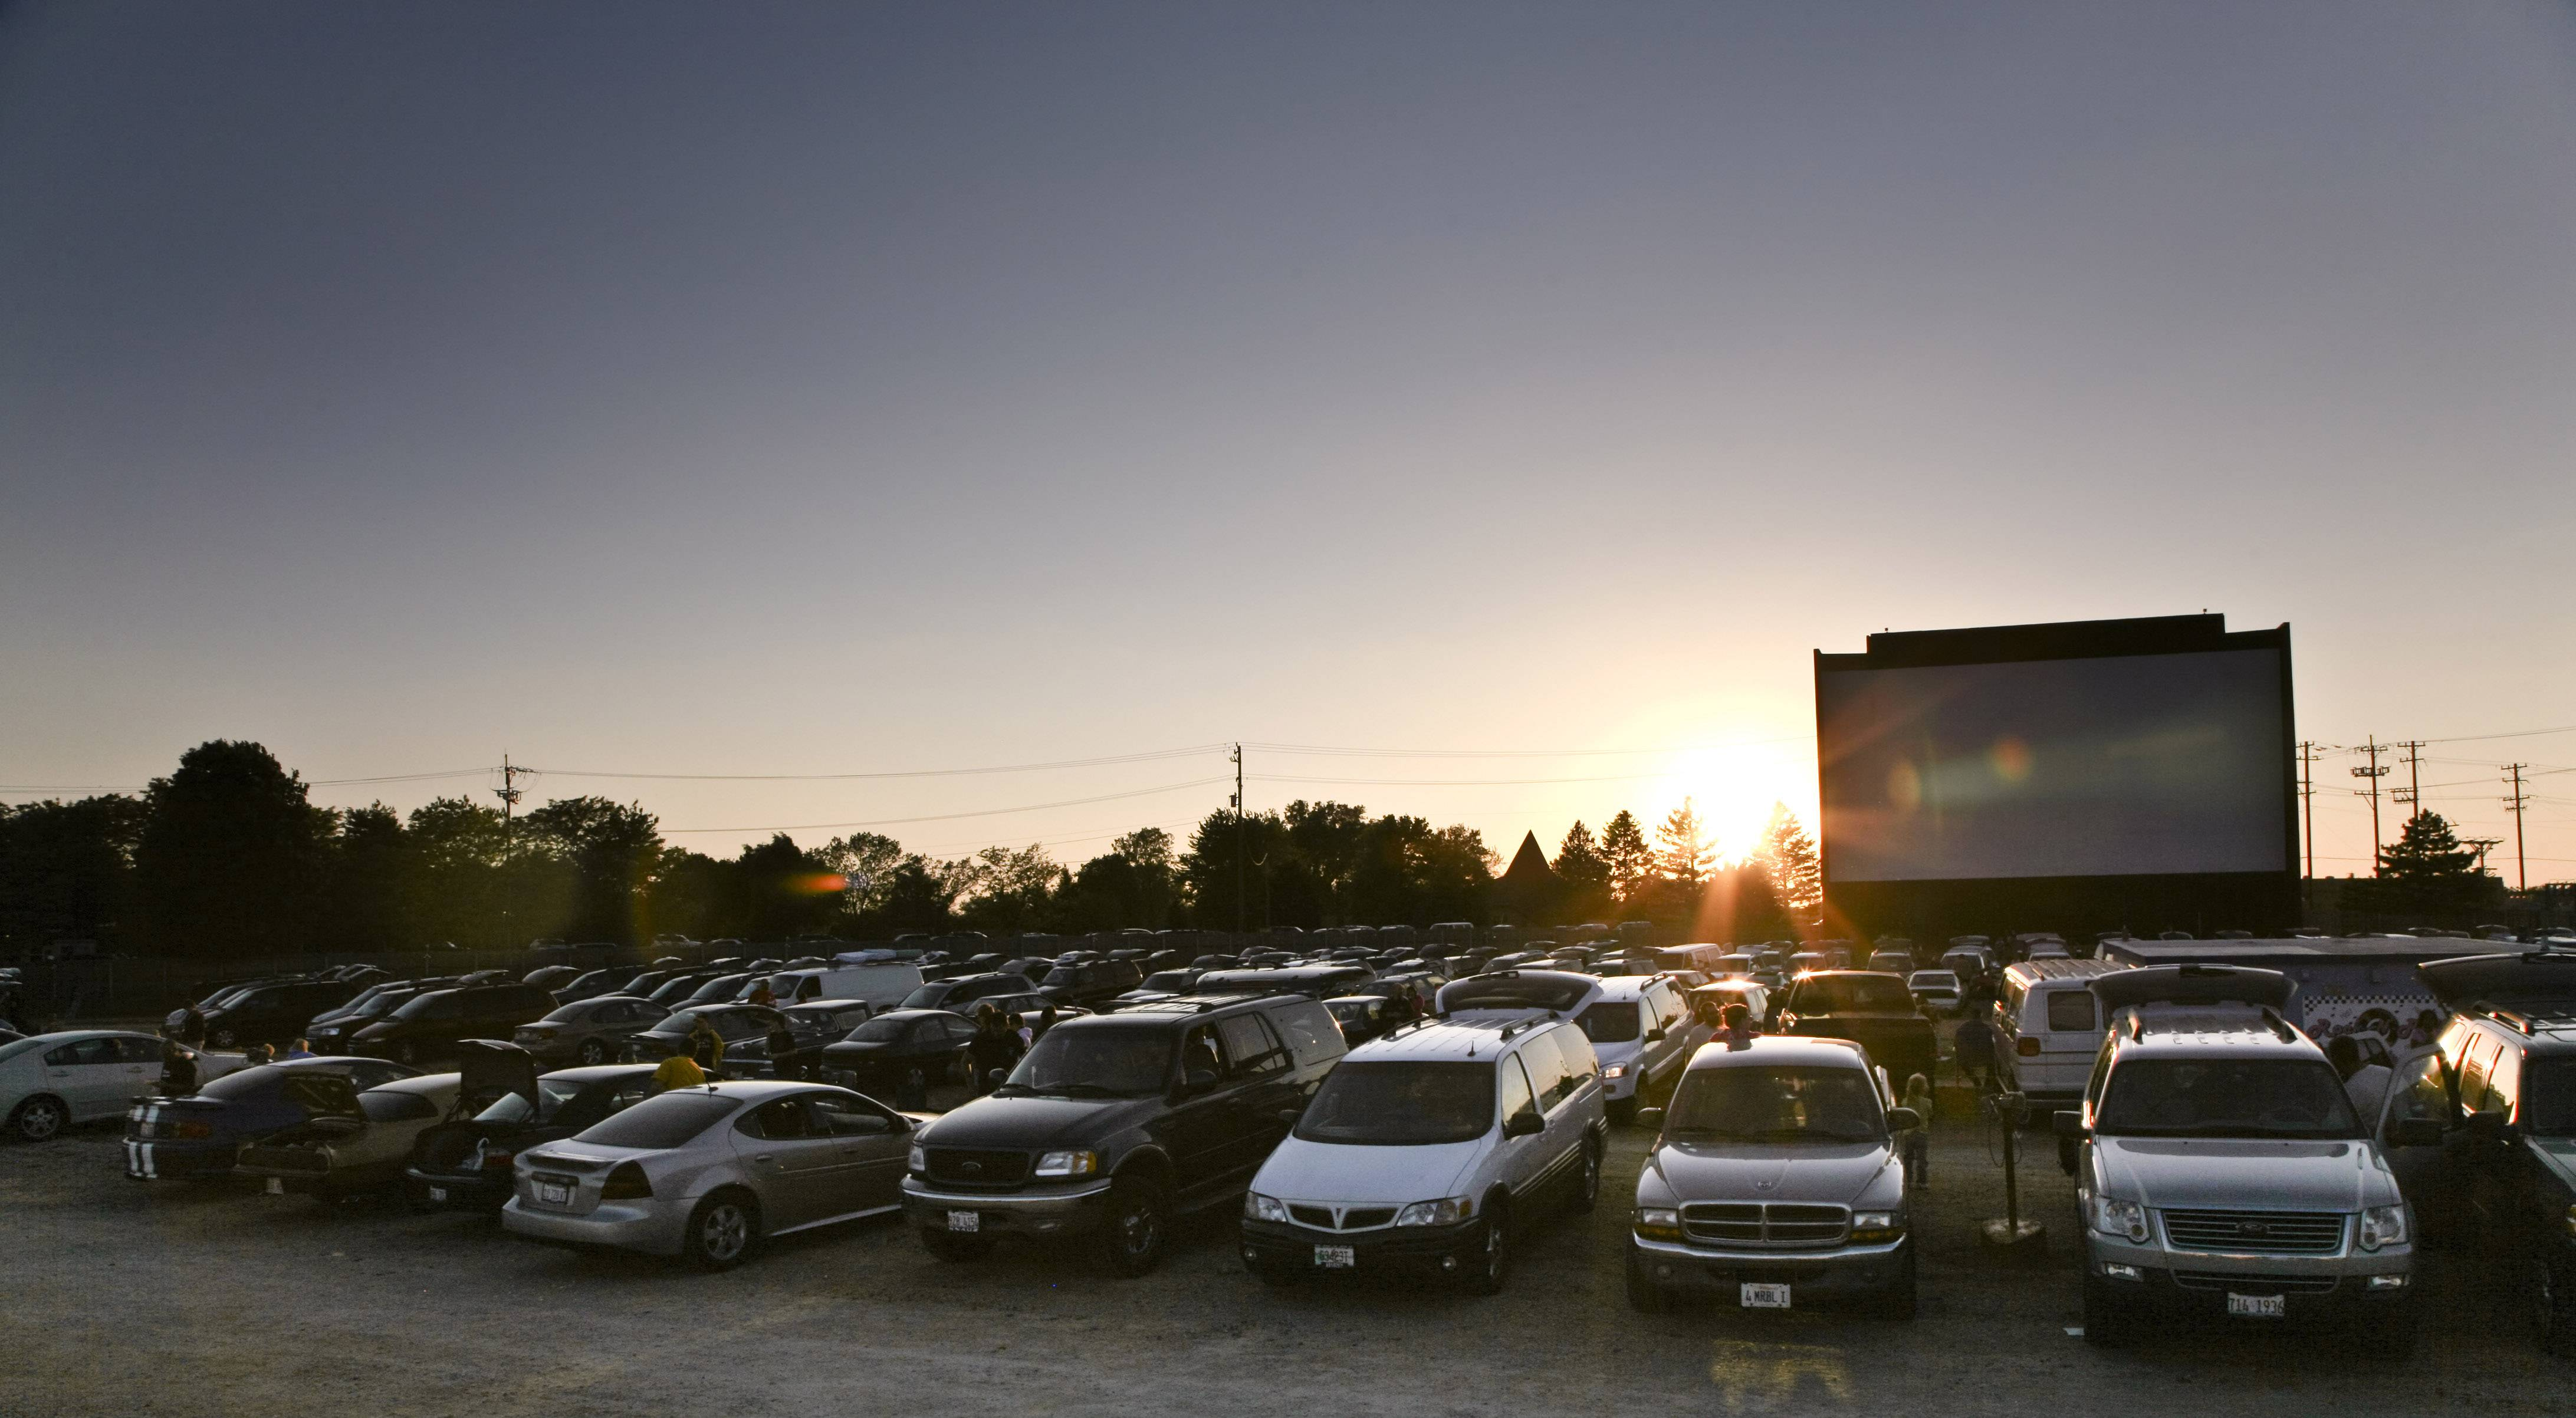 Nostalgia, low ticket prices keep few remaining suburban drive-ins alive